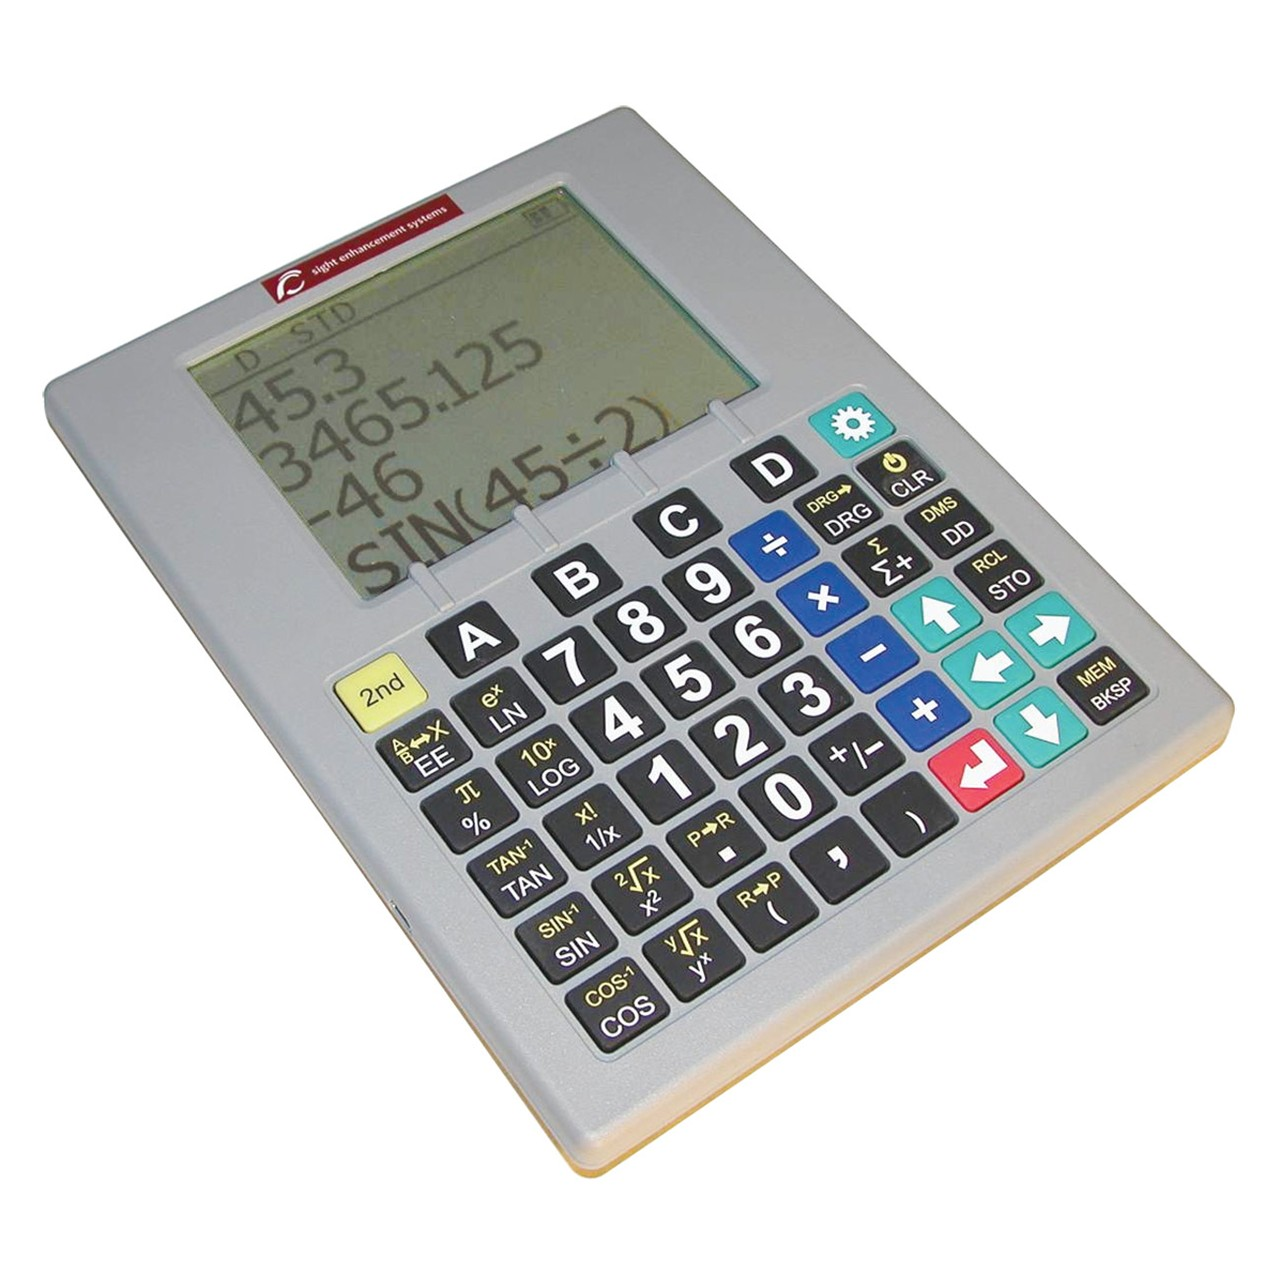 maxiaids gray low vision scientific calculator with speech output